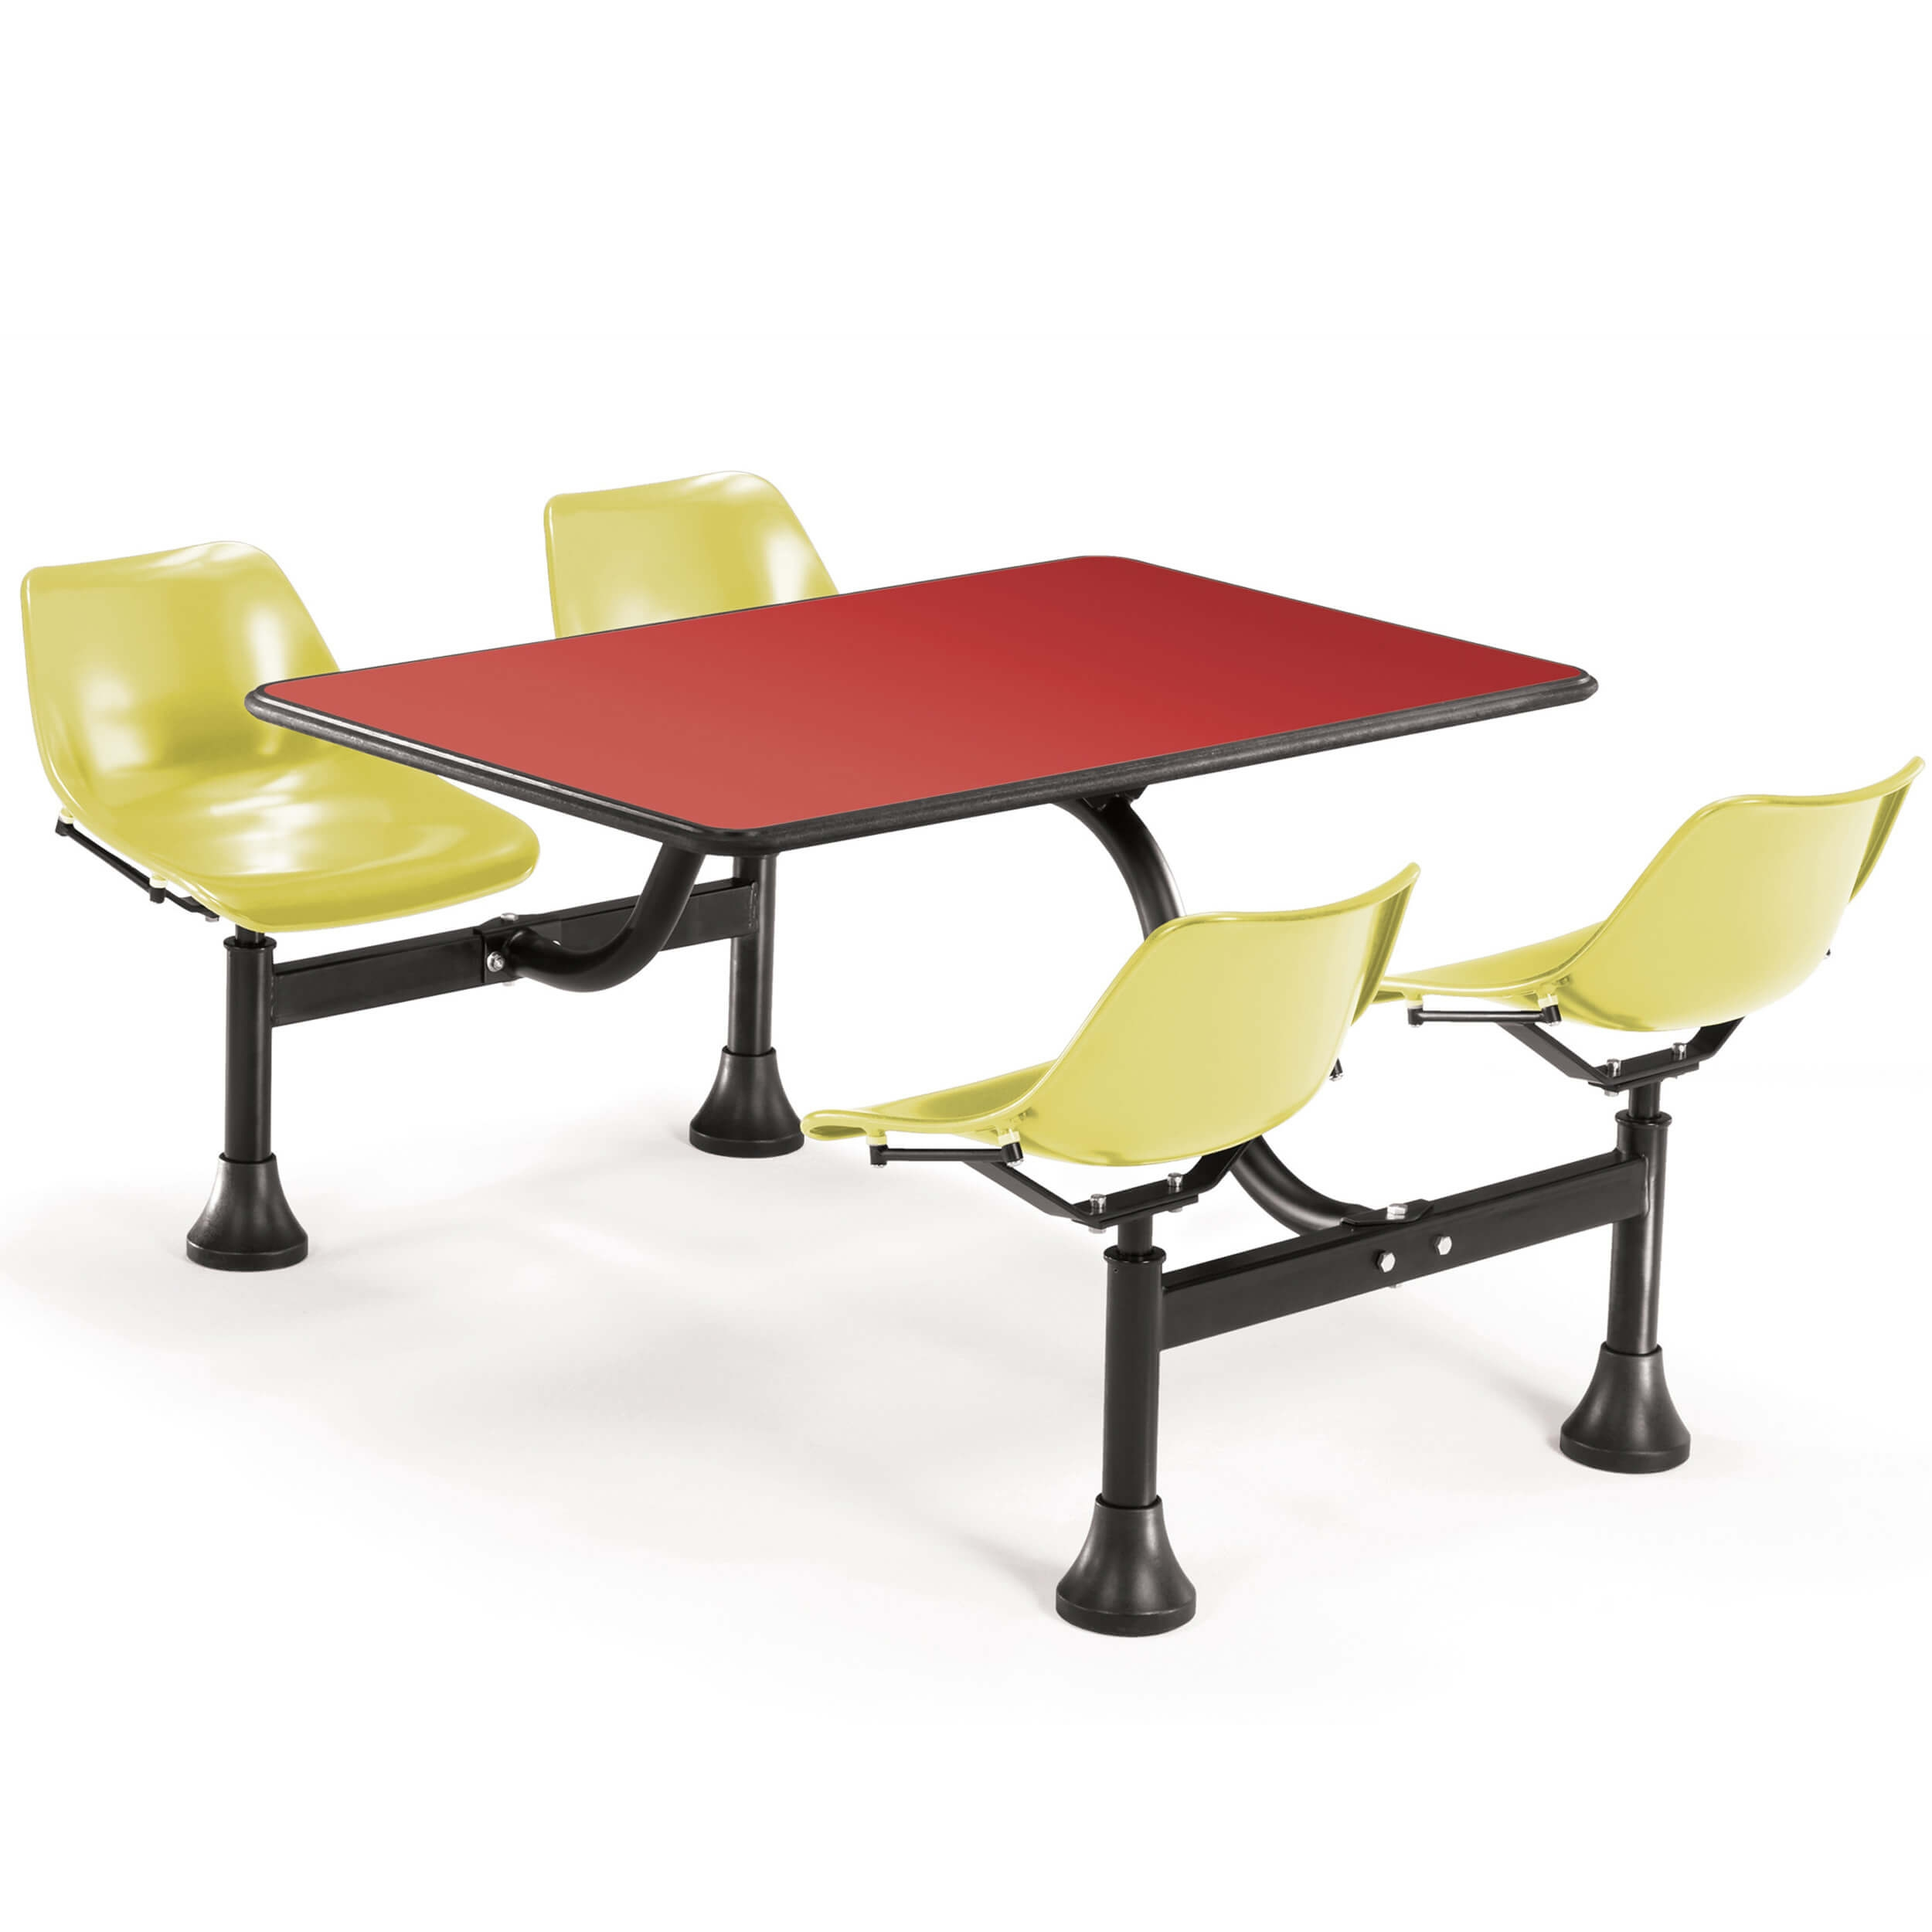 restaurant-tables-and-chairs-24x48-cafeteria-dining-table.jpg